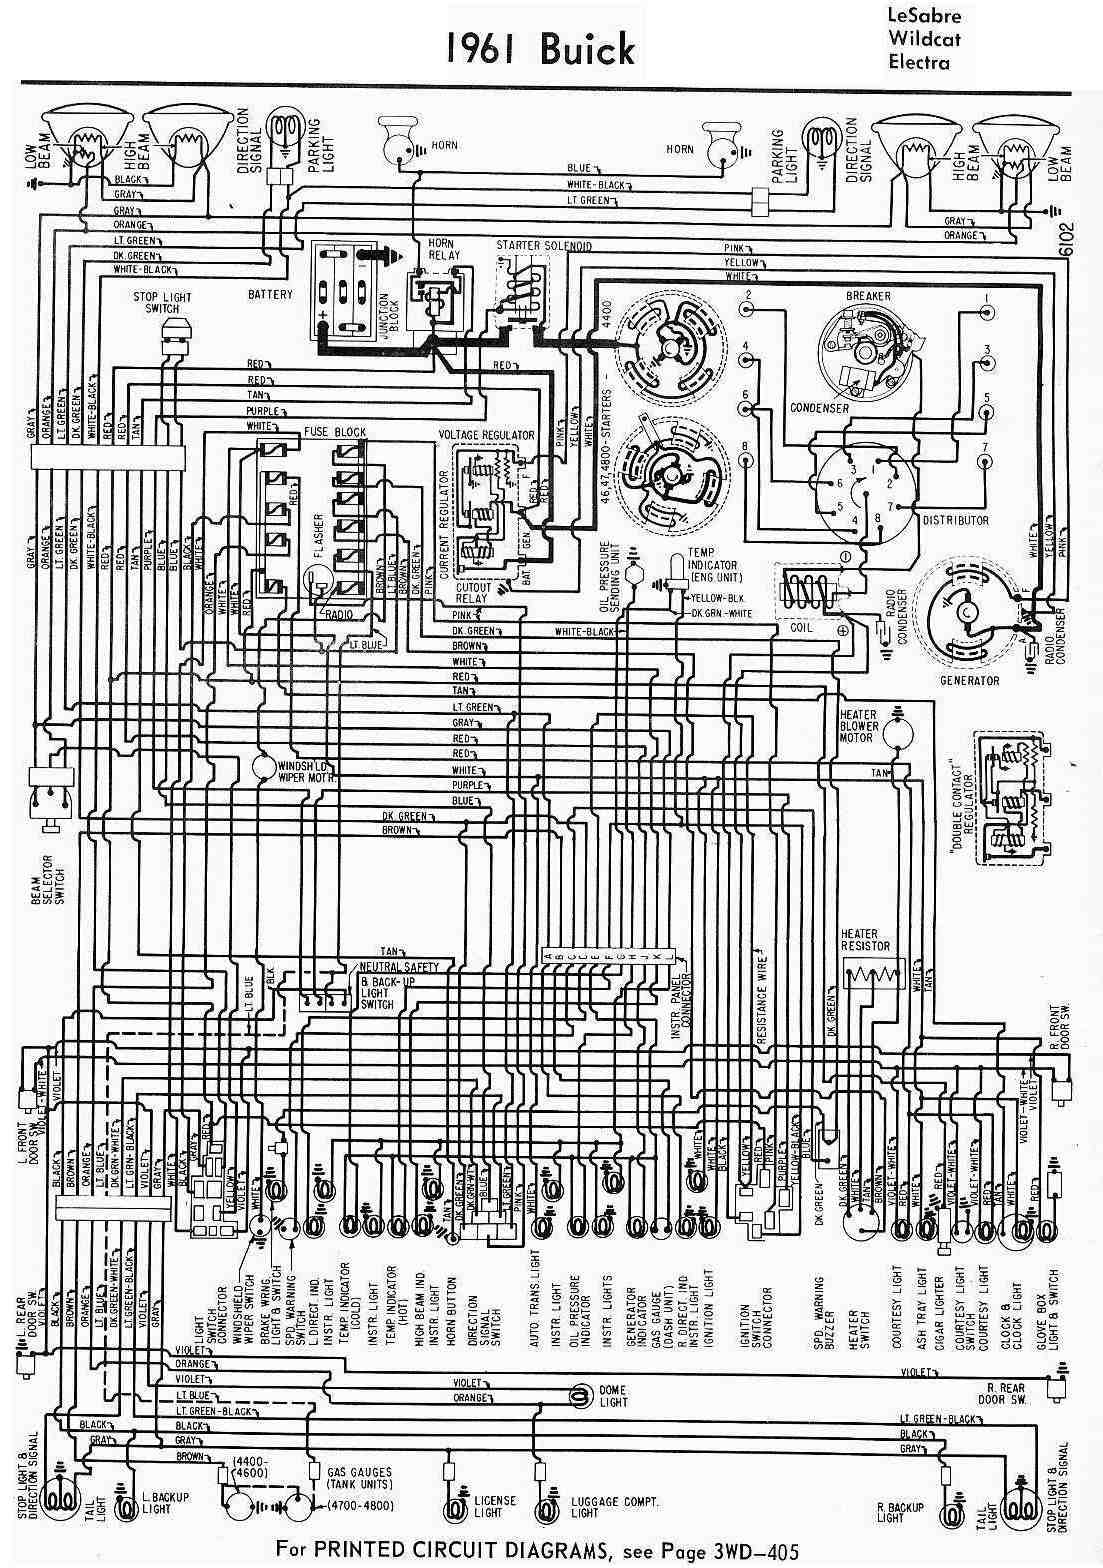 medium resolution of 97 buick lesabre wiring diagram wiring diagram db 1997 buick lesabre fuse diagram 1997 buick lesabre diagram